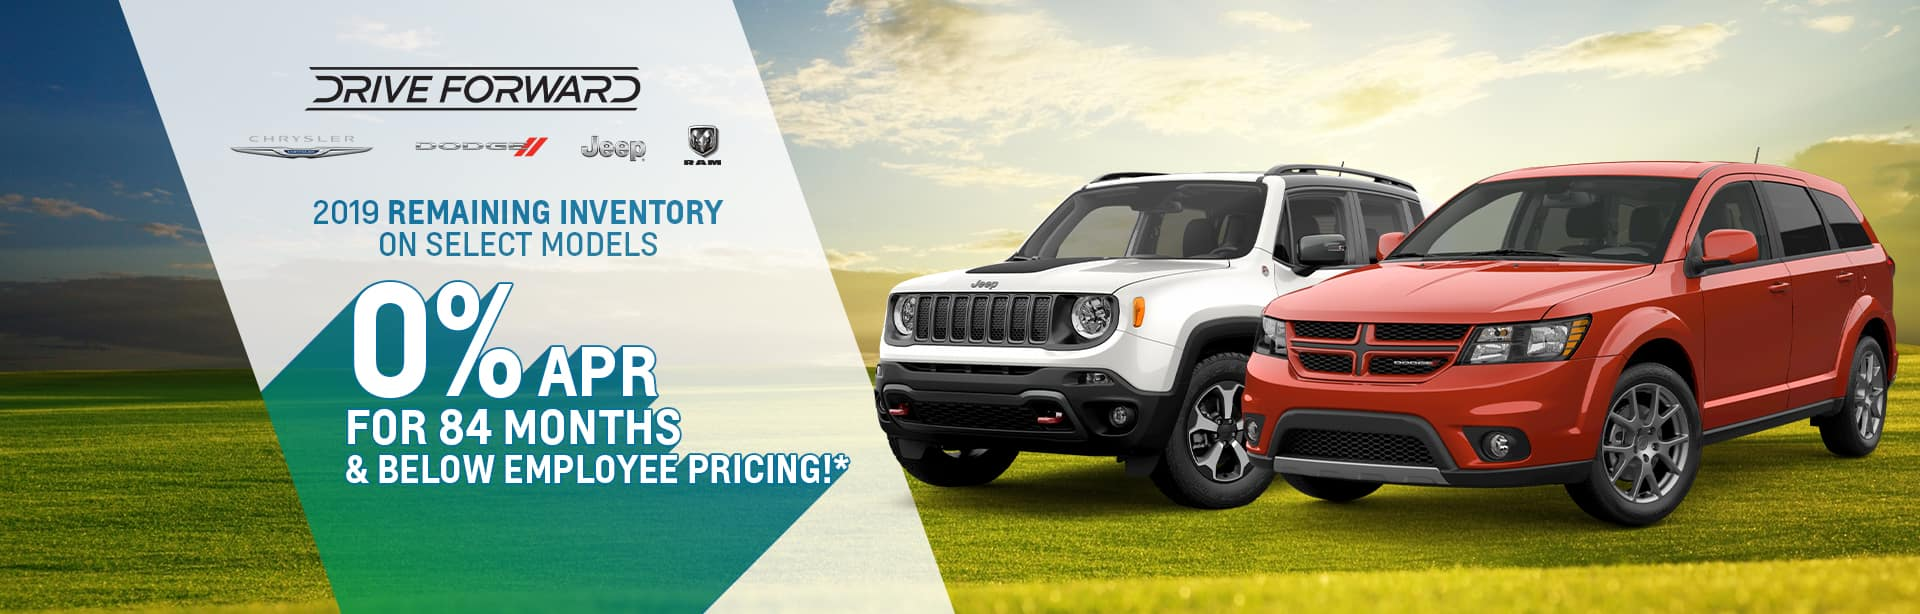 Special Financing for 84 months on Select Models at York CDJR Brazil